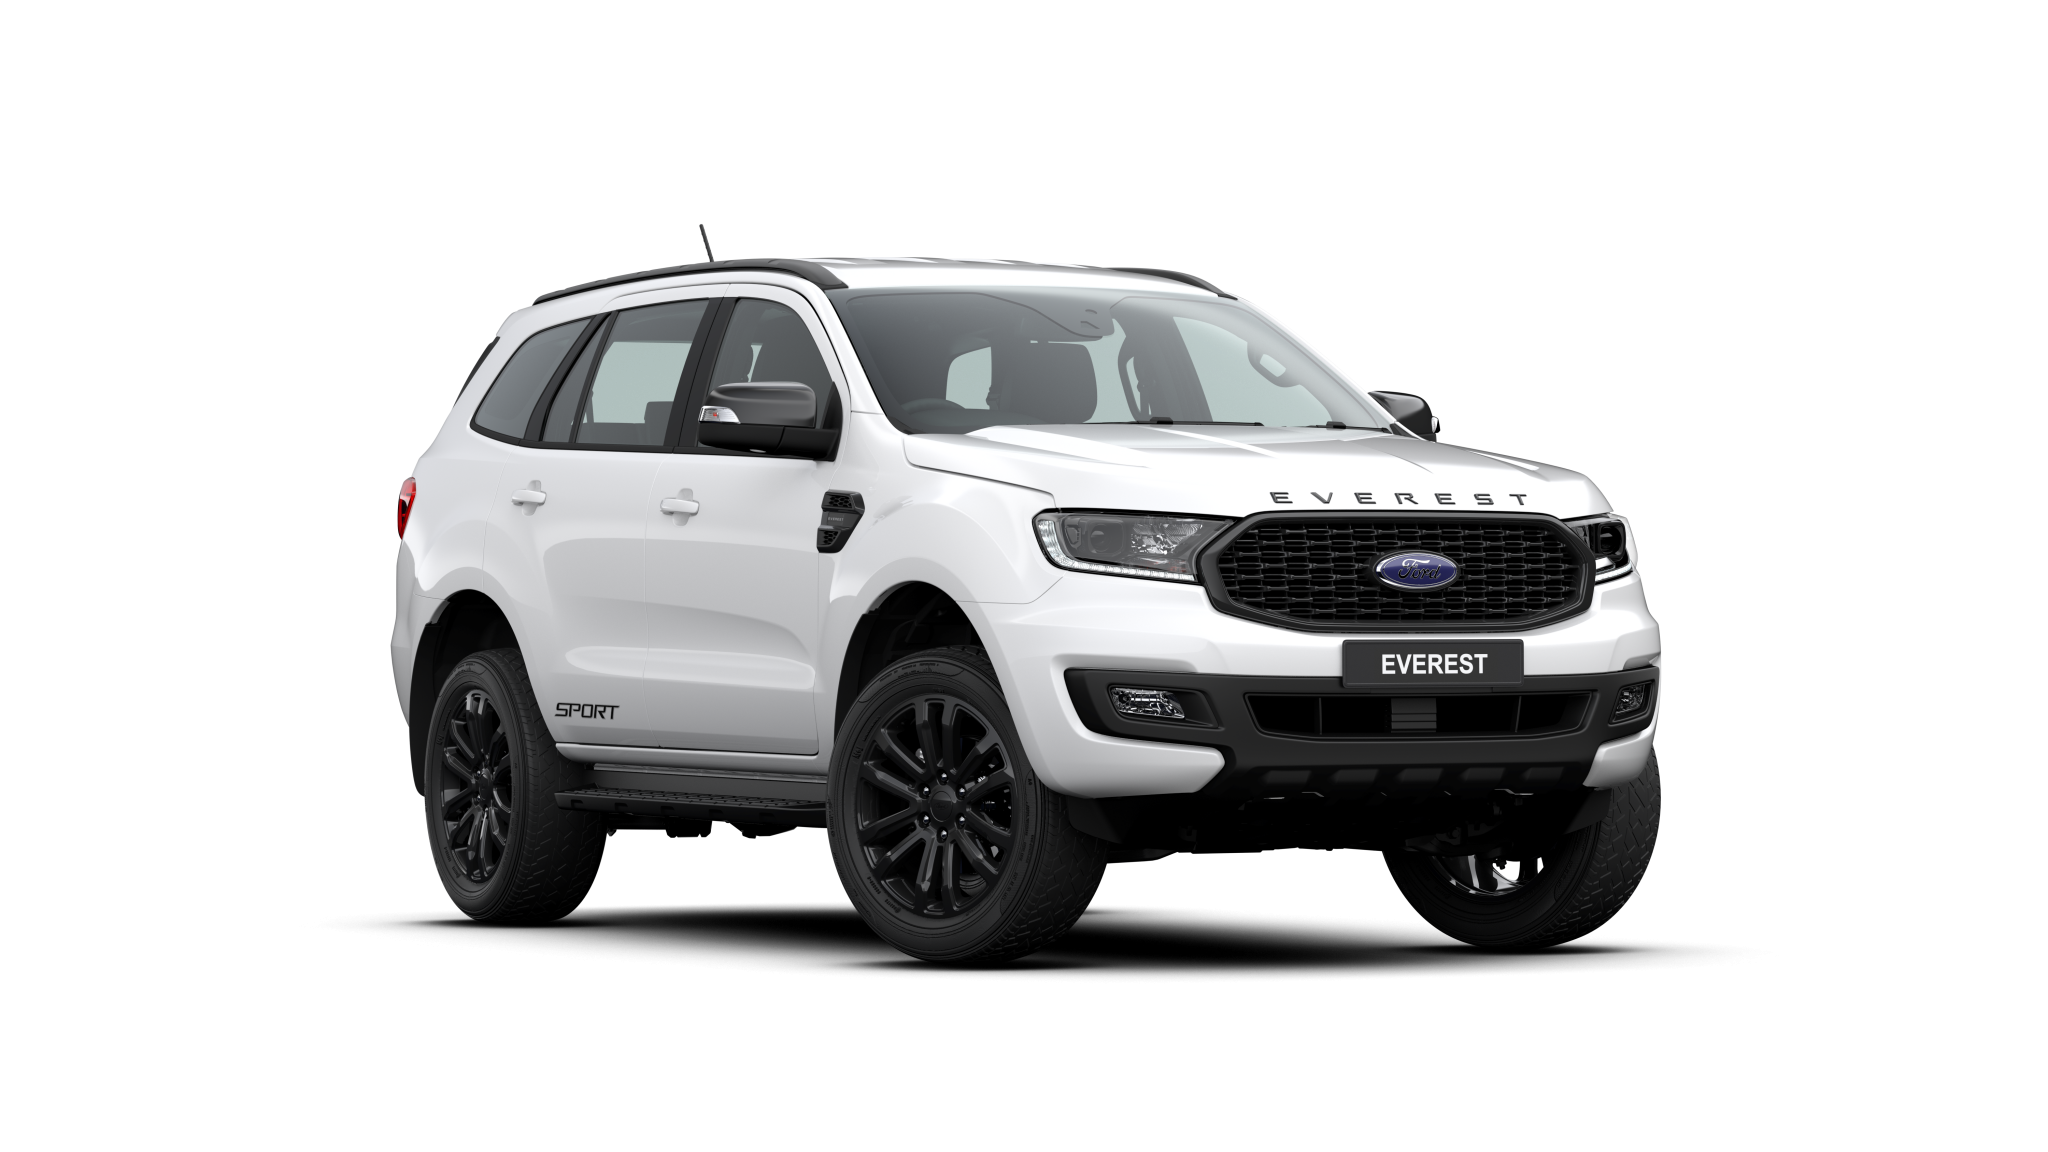 FORD EVEREST SPORT U375ICA_TH_19D_SPORT_2000_4x2_ArcticWhite_01_FR34_R